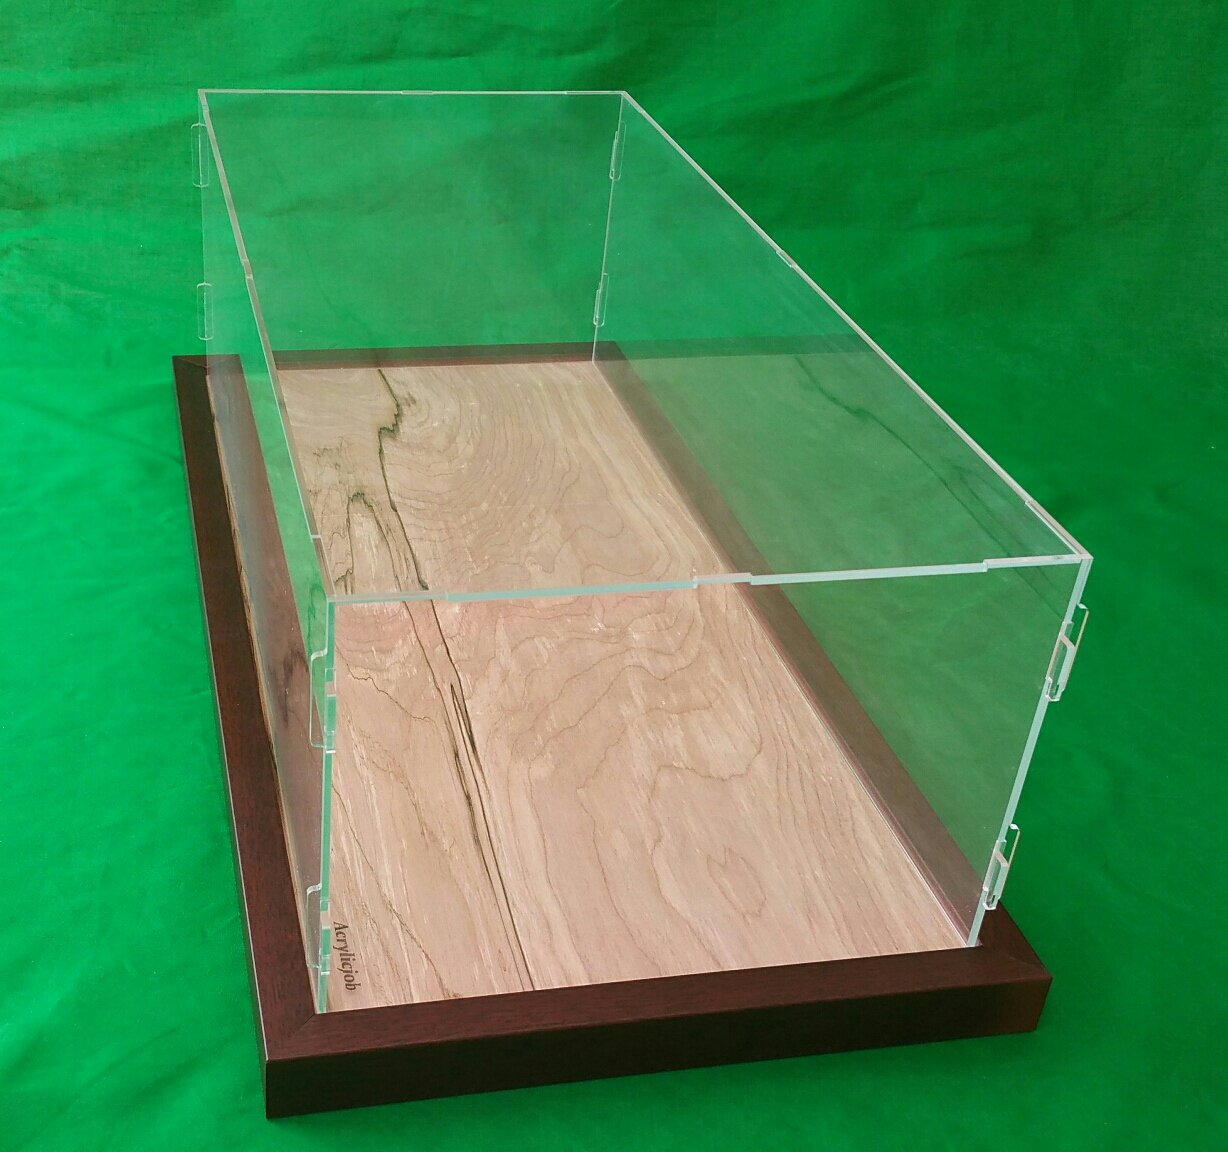 25''L x 12''W x 7''H Acrylic Display Case for 1:8 scale Pocher Testarossa and model cars